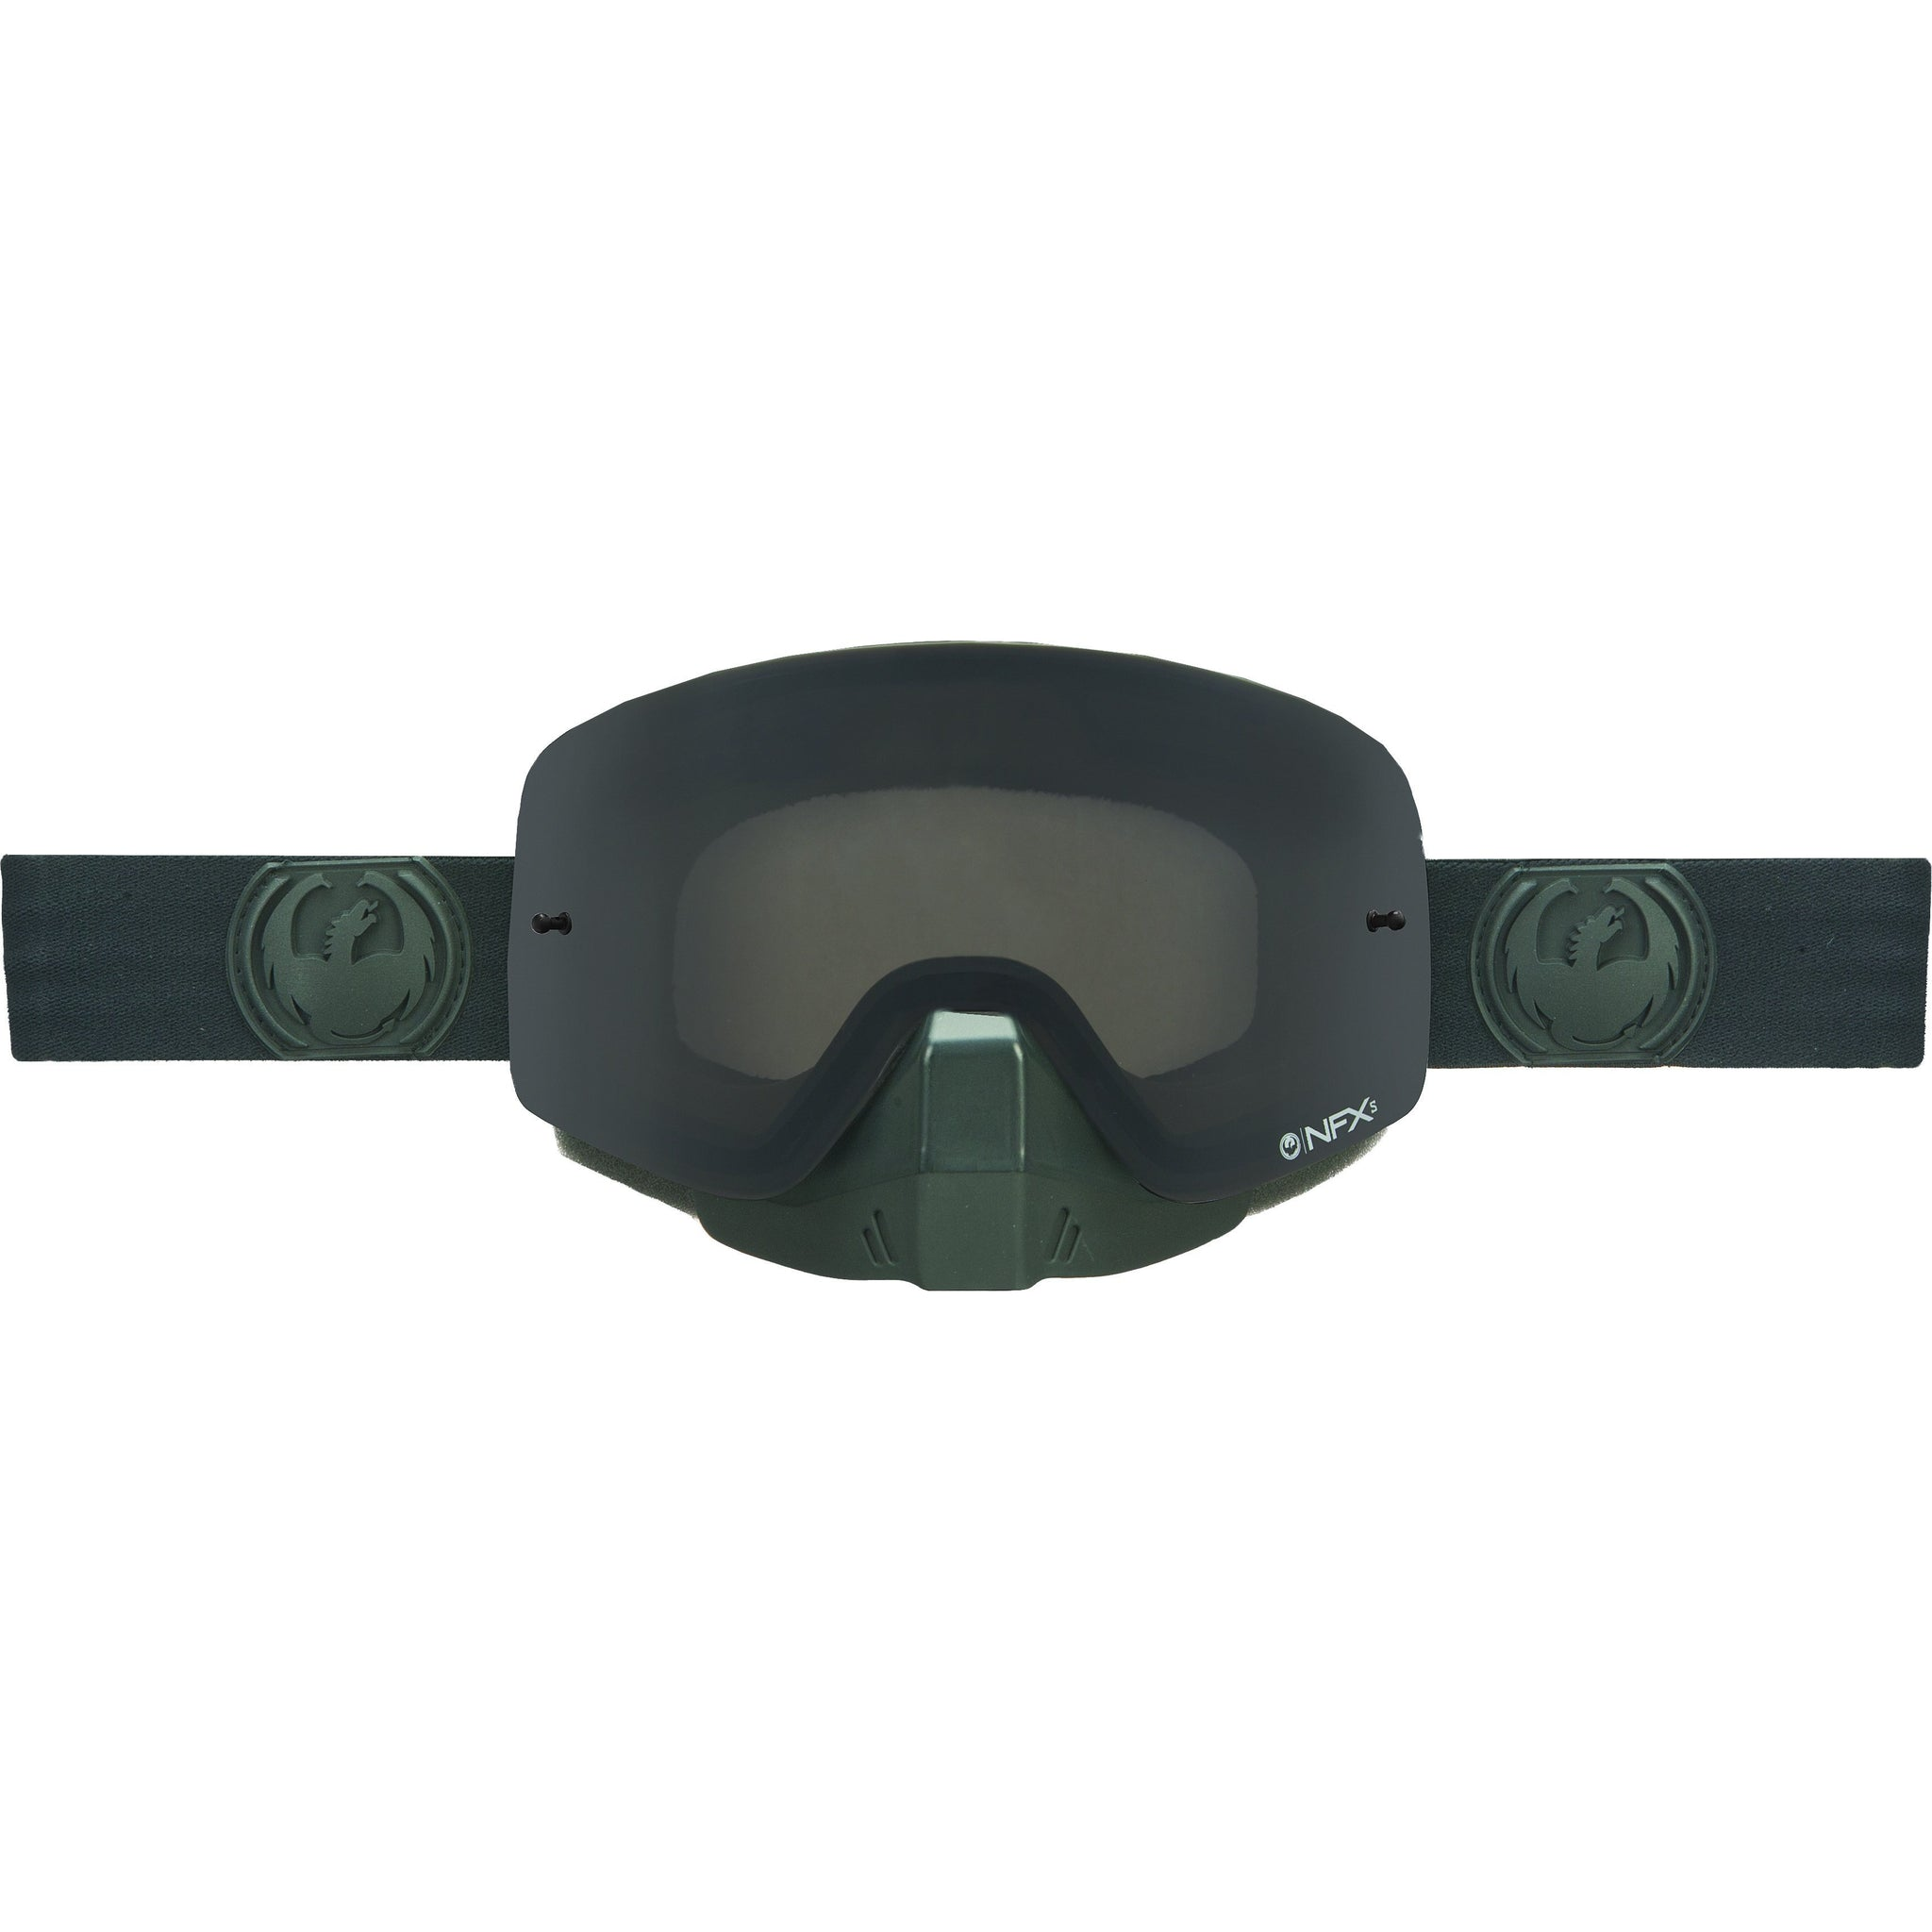 "NFXS Polycarbonate Snow Goggle ""Knight Rider"" Kit"